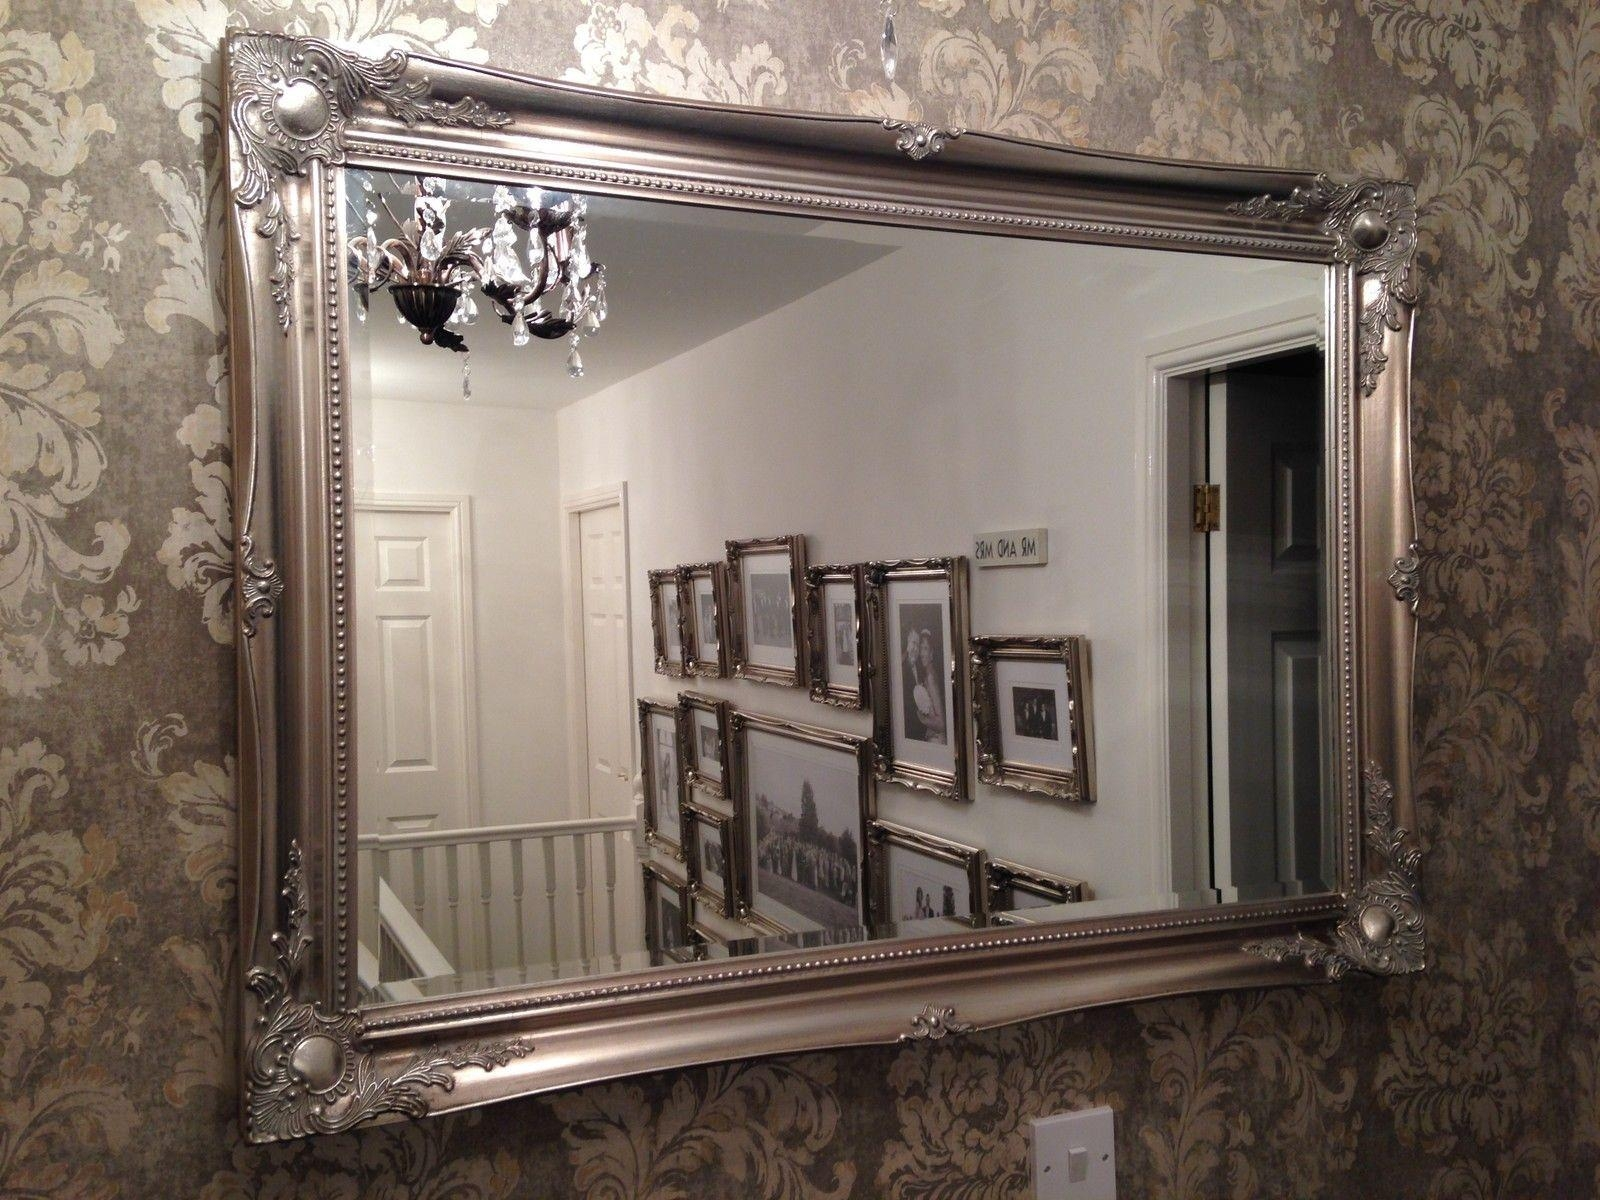 Large Antique Wall Mirror Ornate Frame Antique Ornate Wall Mirrors Inside Vintage Large Mirrors (Image 8 of 20)